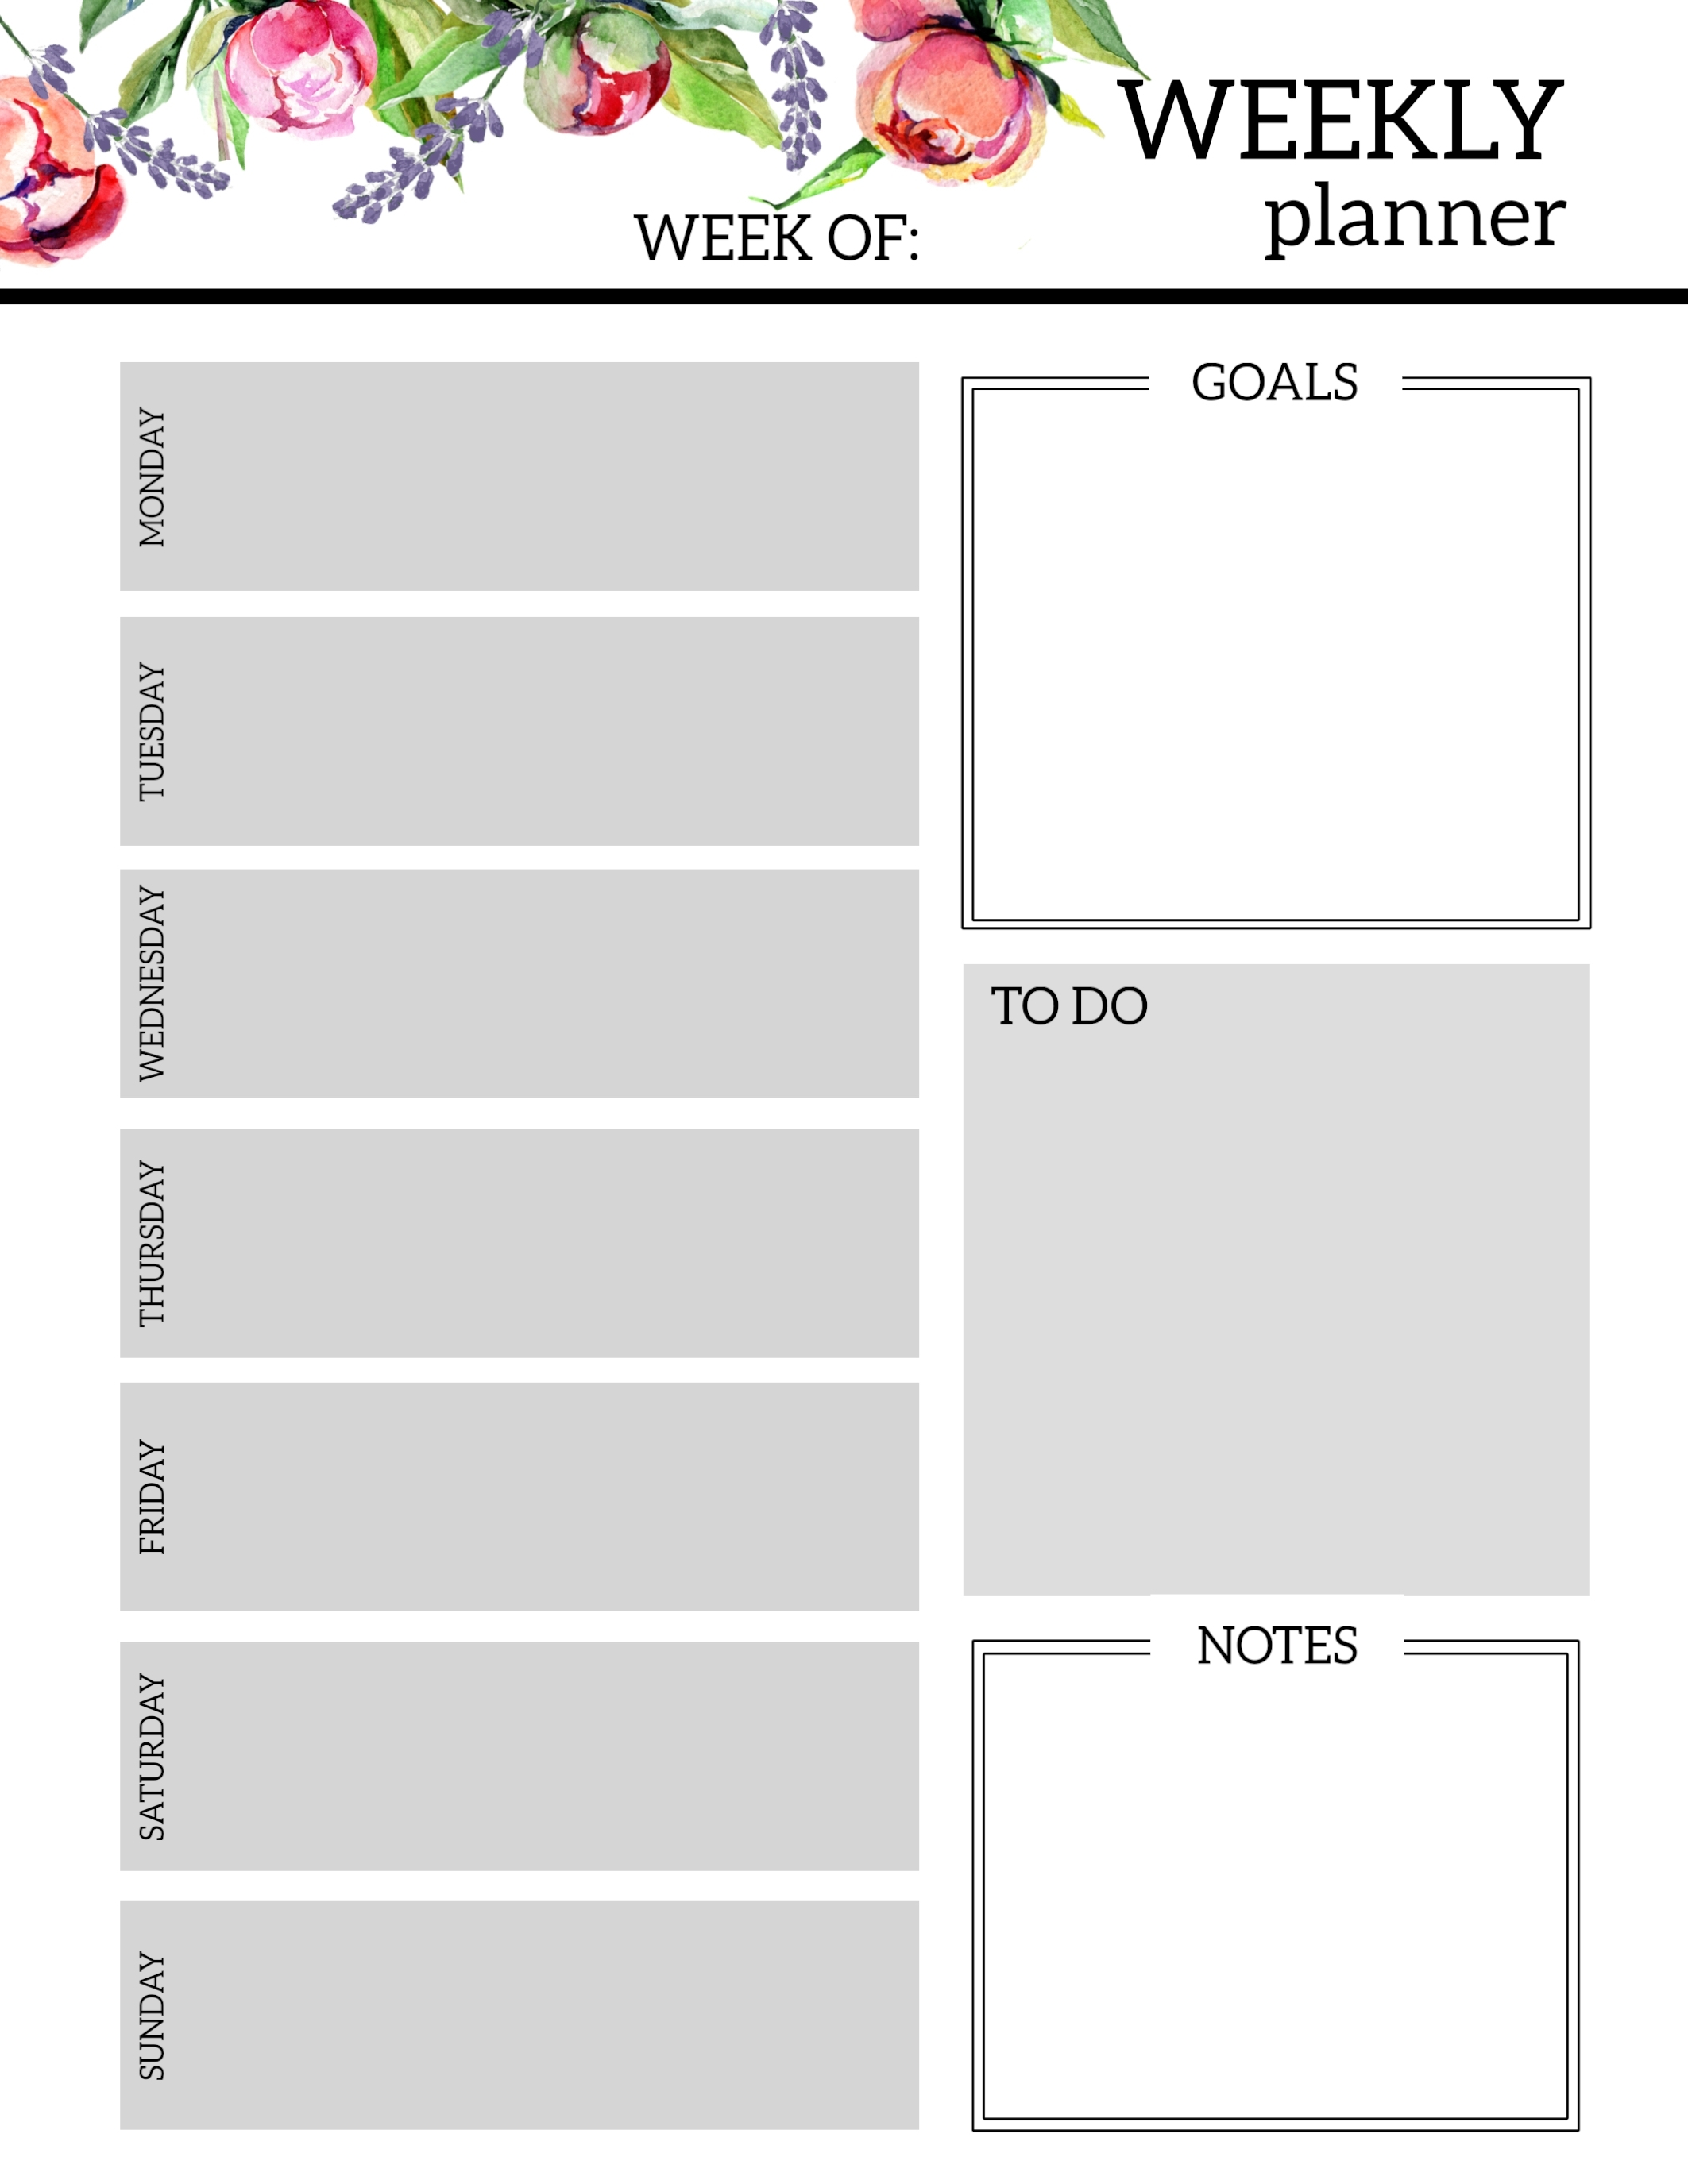 021 20Free Blank Weekly20R Template Printable Calendar Templates intended for Weekly Calander Lesson Plan Template